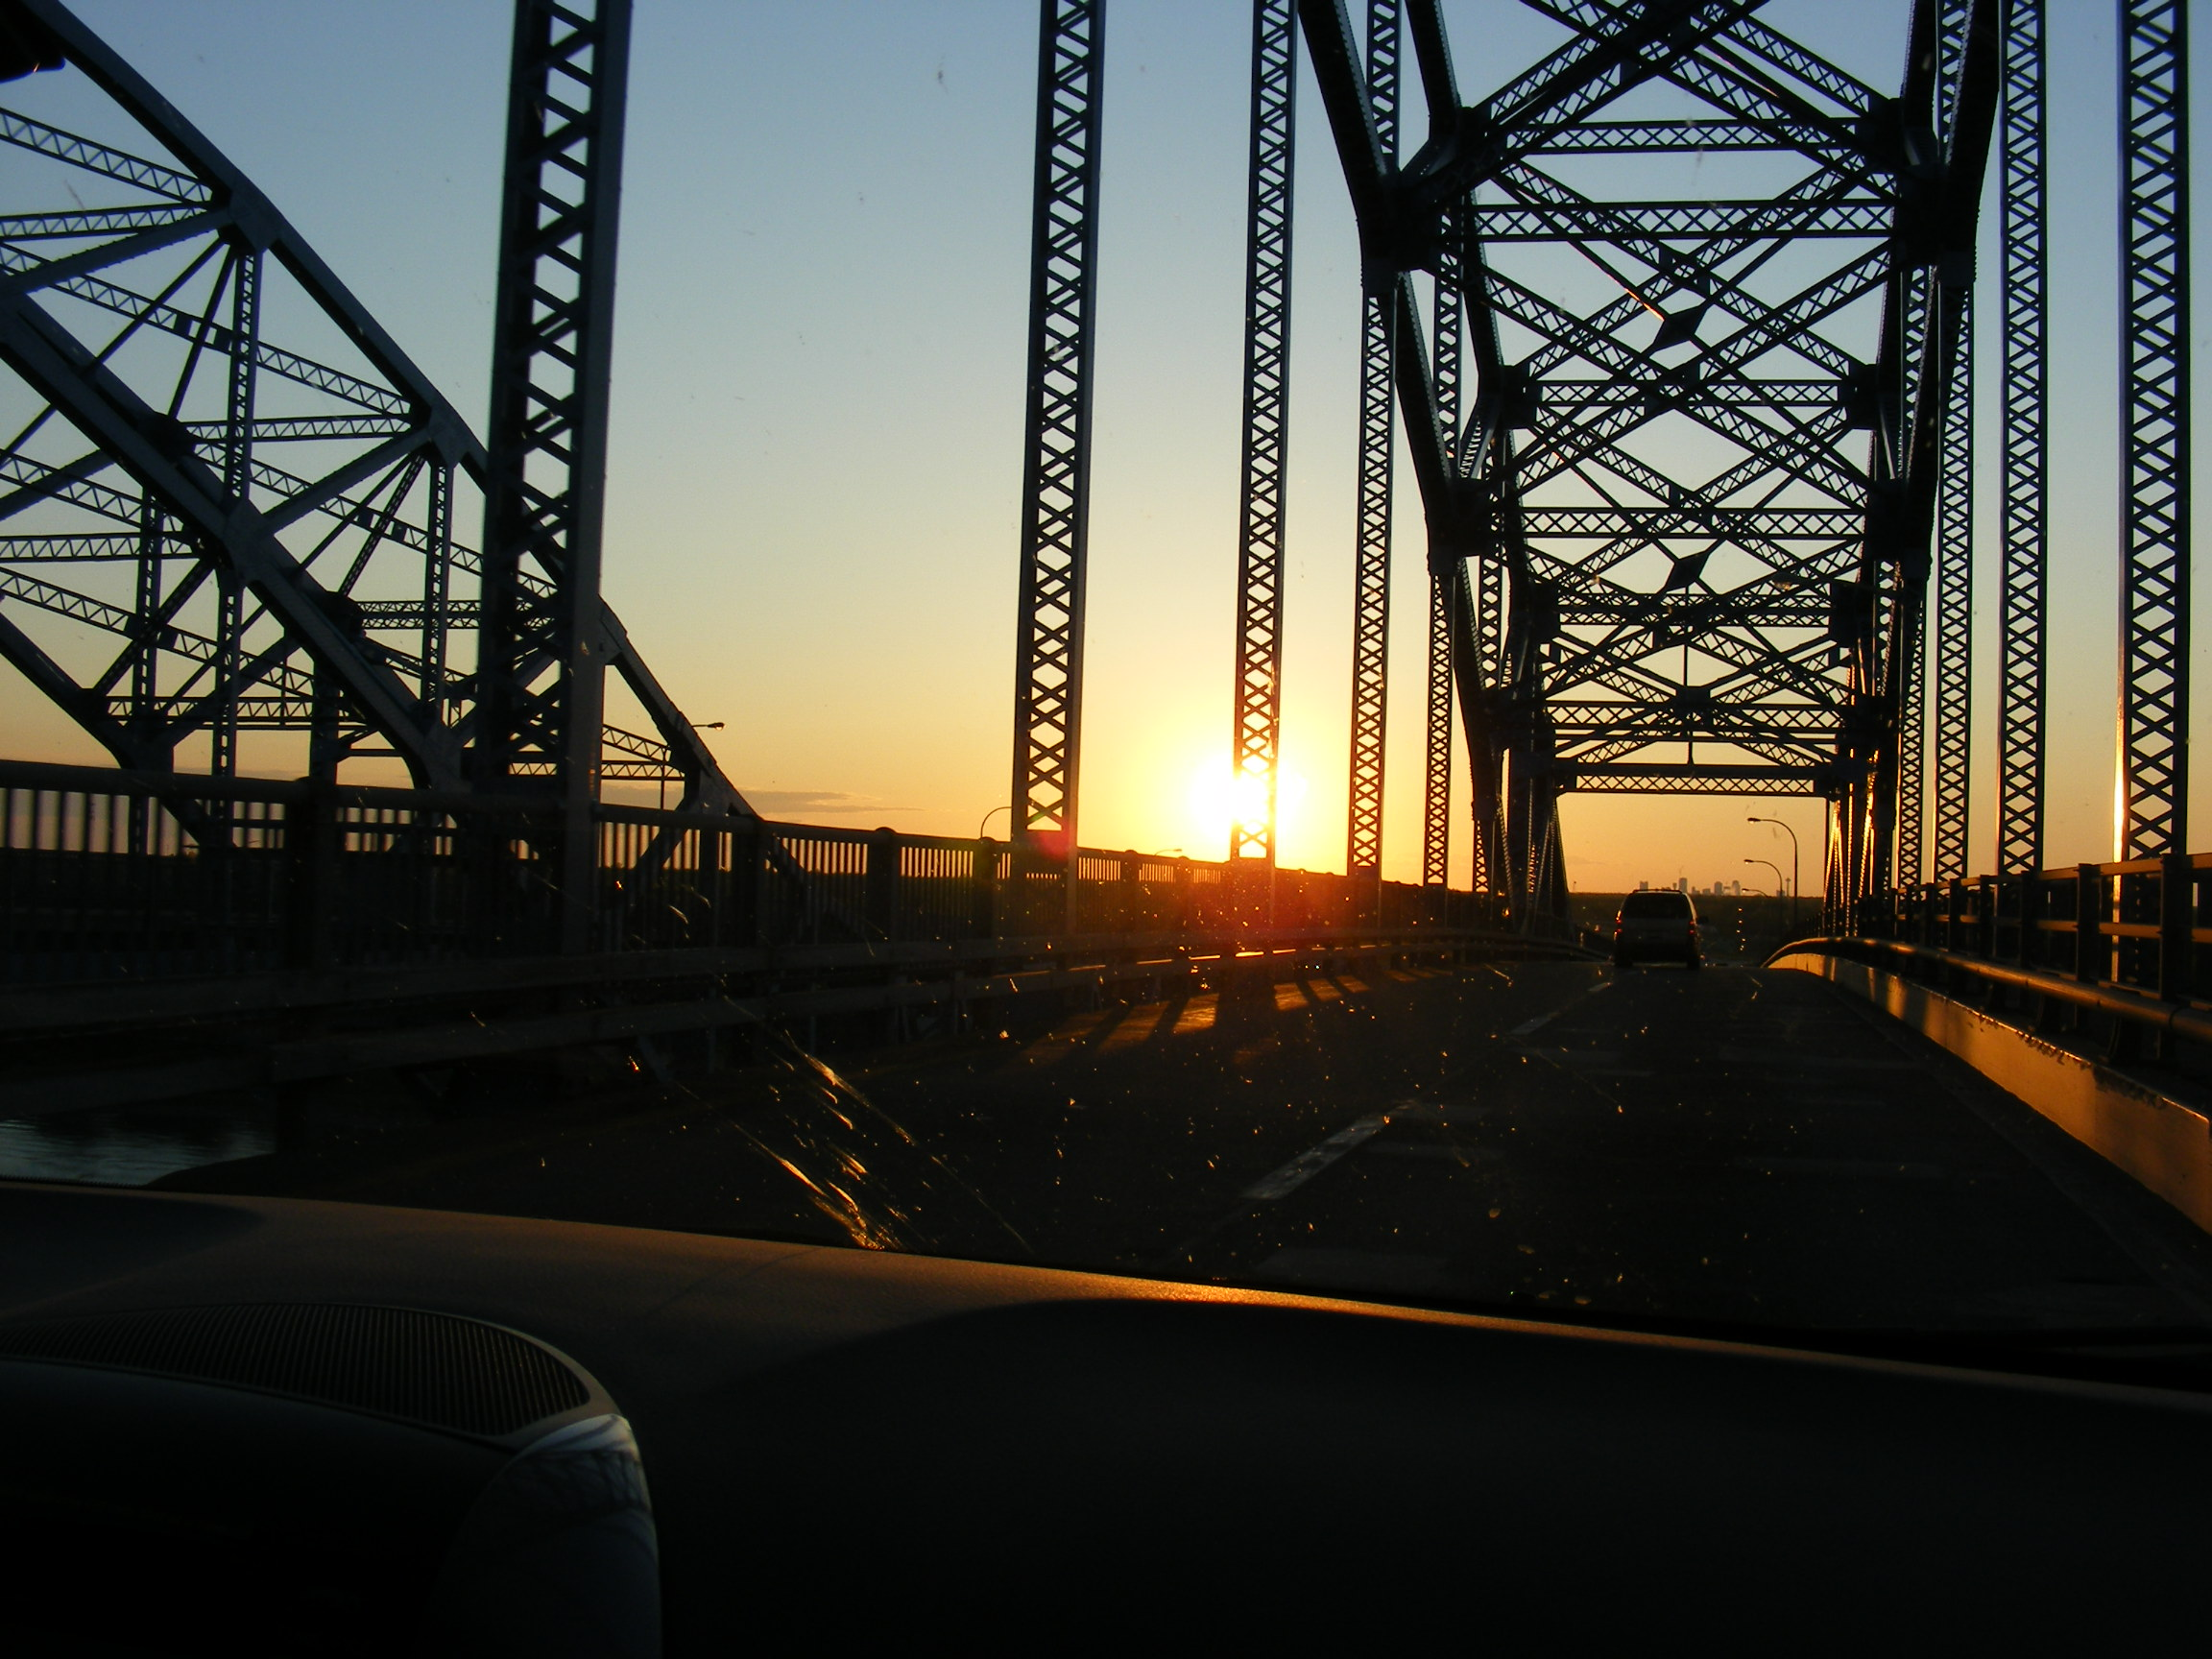 Sun set through a bridge photo